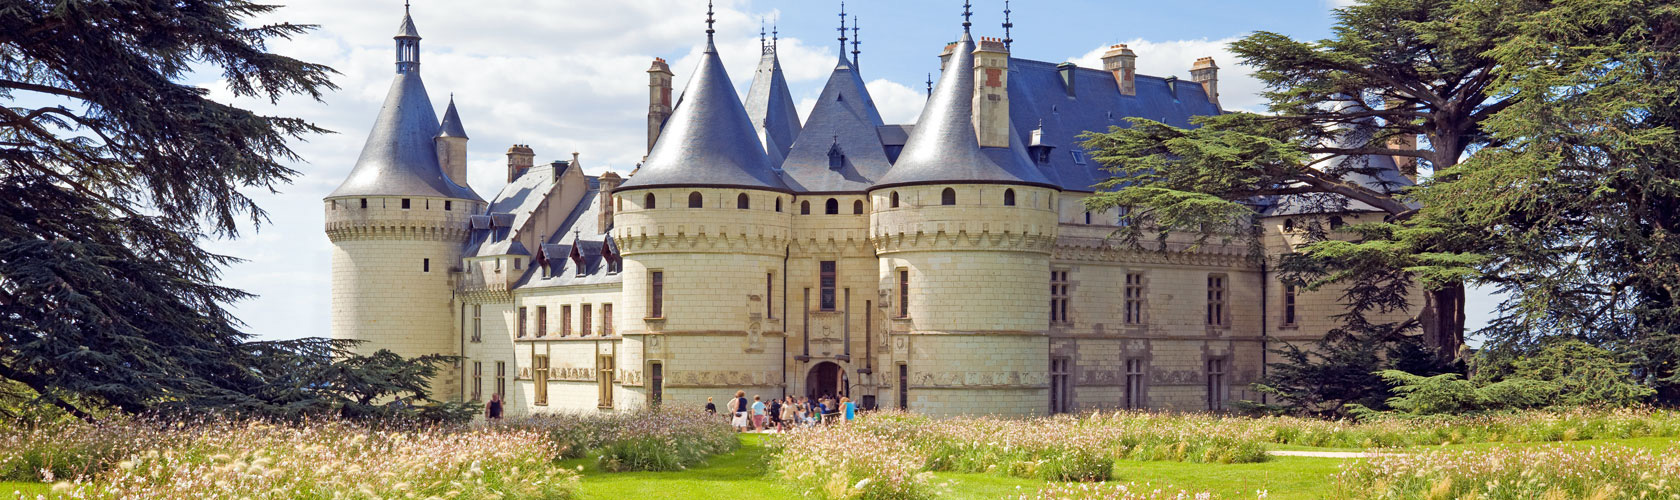 Internationales Gartenfestival im Loire-Tal